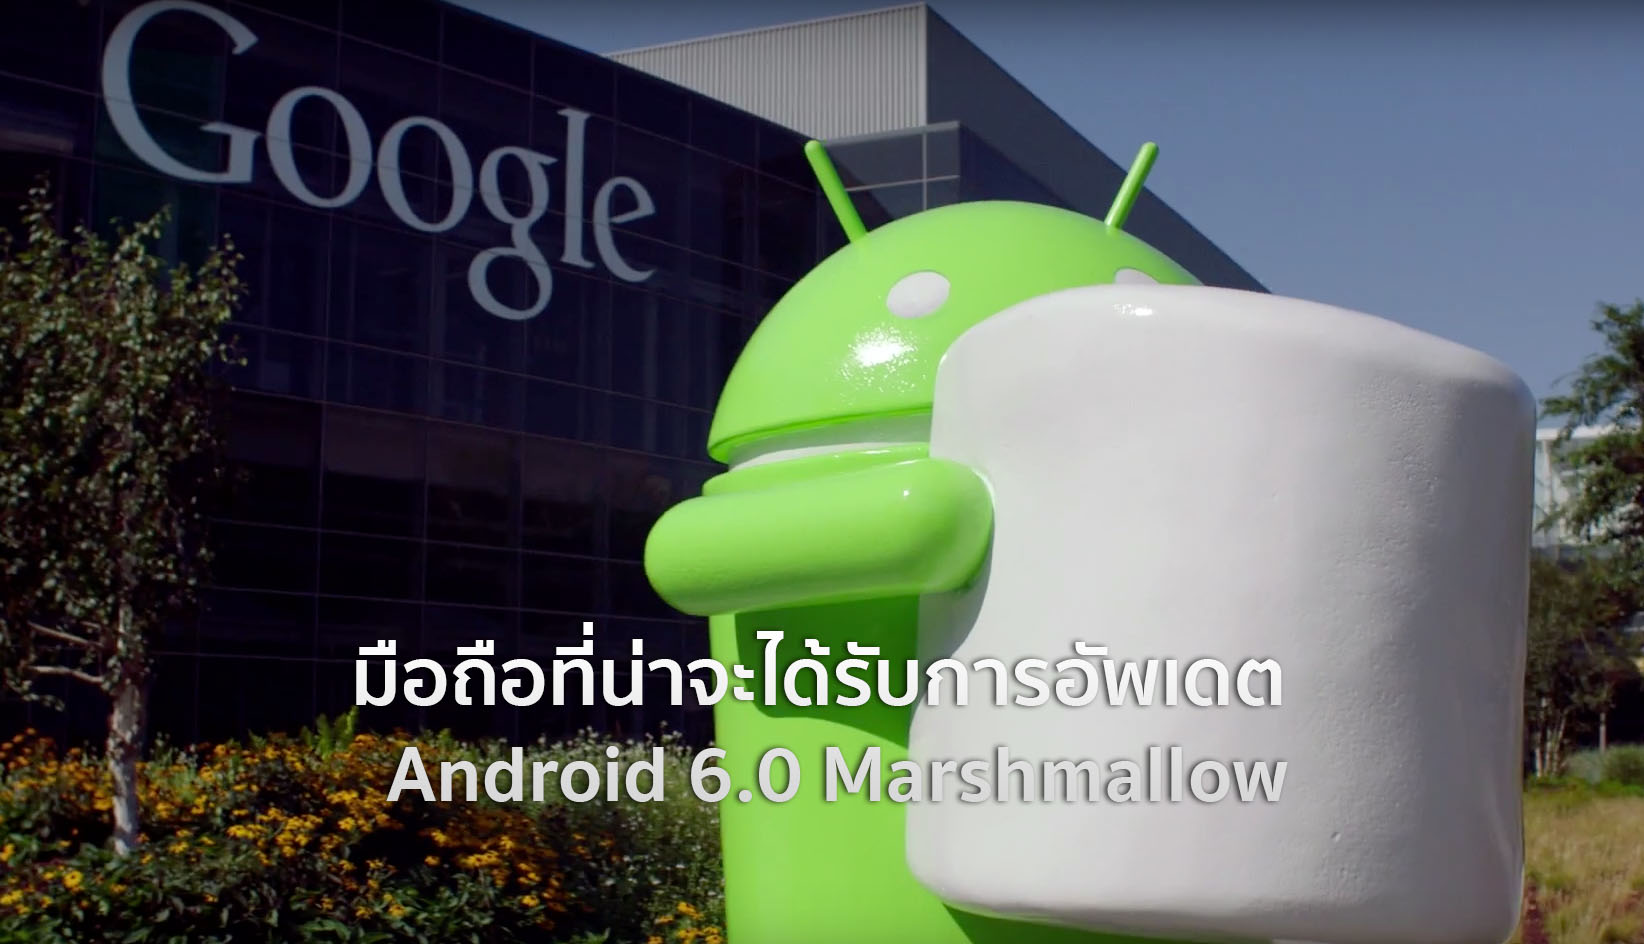 Android Marshmallow smartphone update